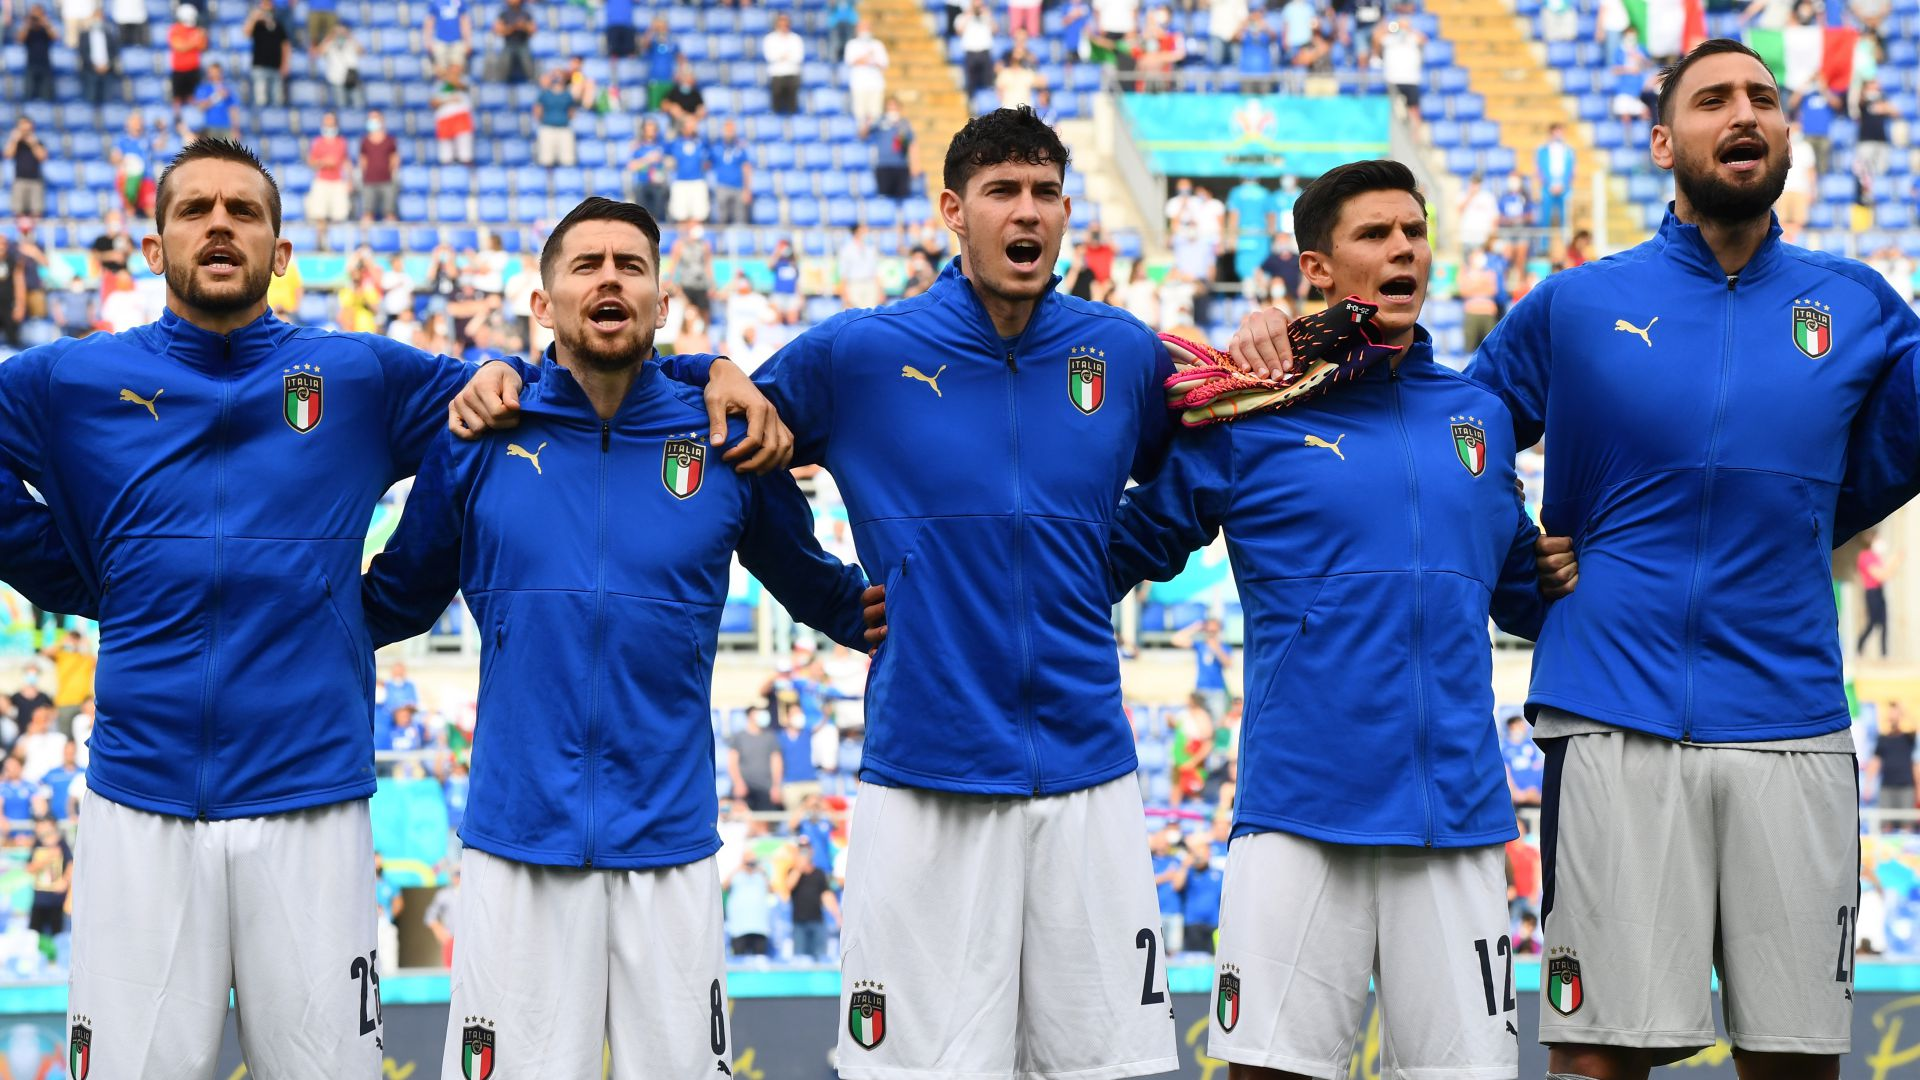 Italy will take the knee before Belgium clash 'as a sign of solidarity' - but national team 'do not support Black Lives Matter'